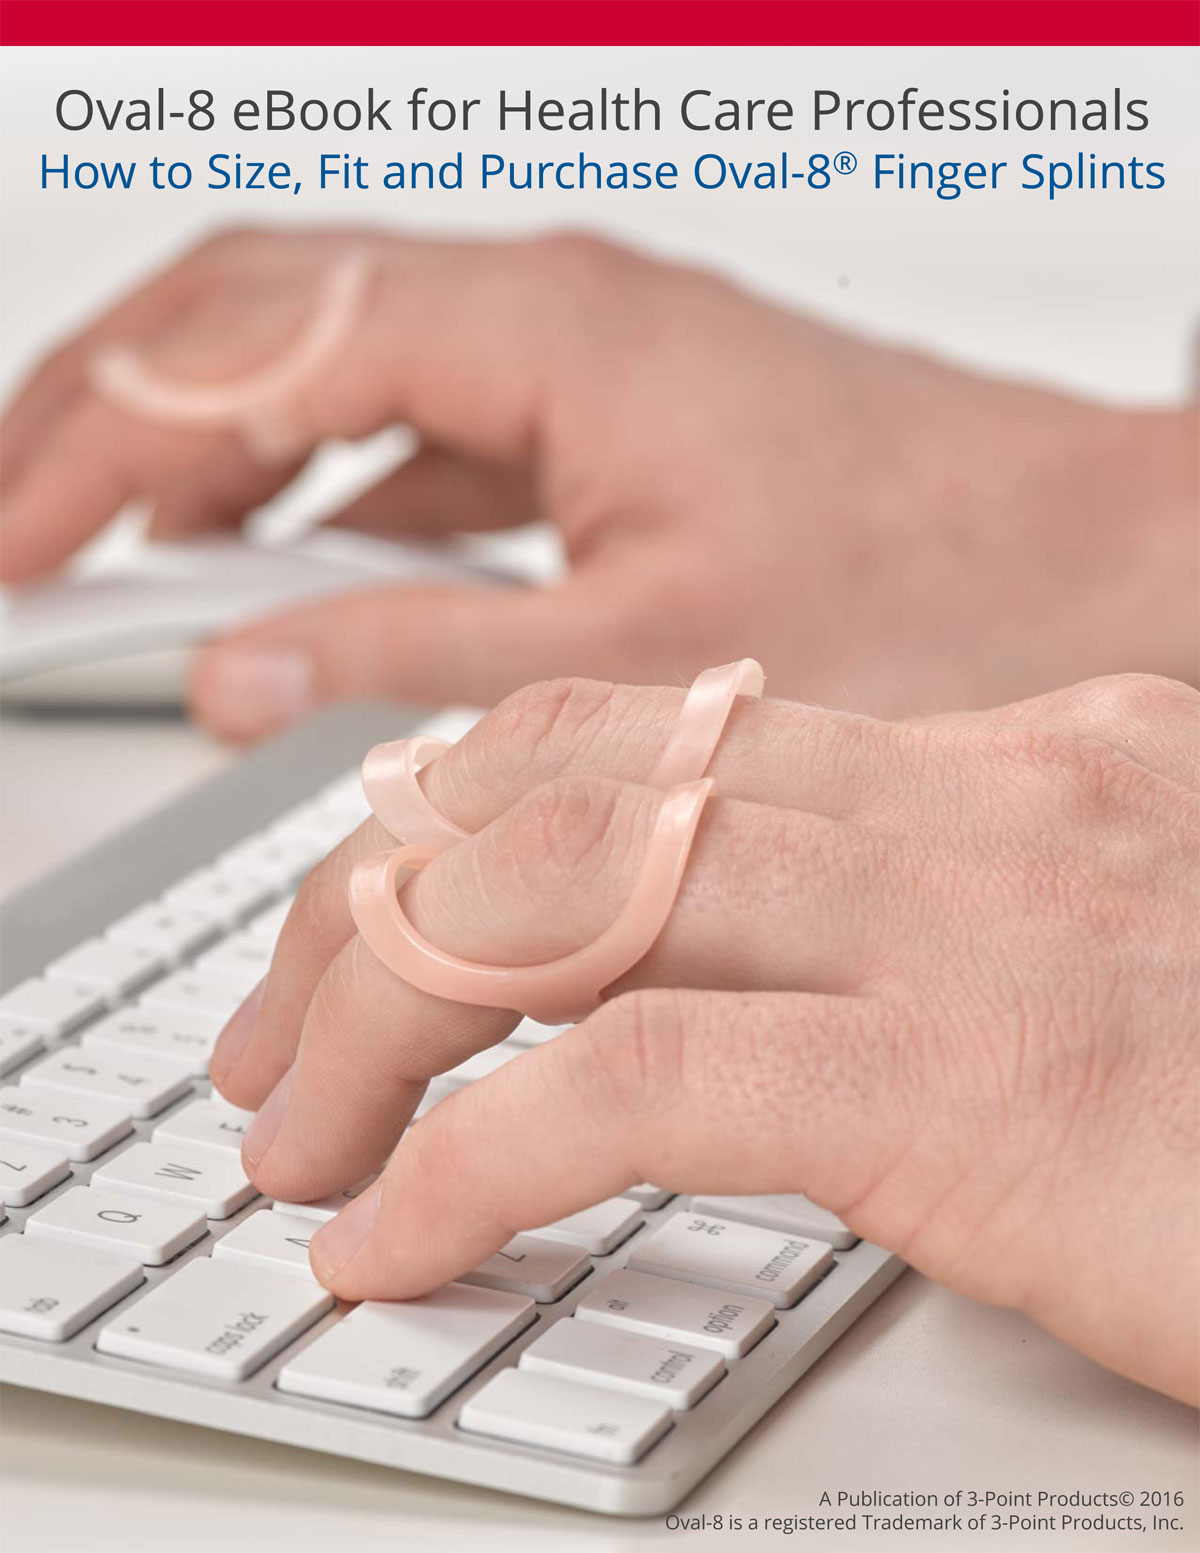 Download the Oval-8 eBook for Health Care Professionals